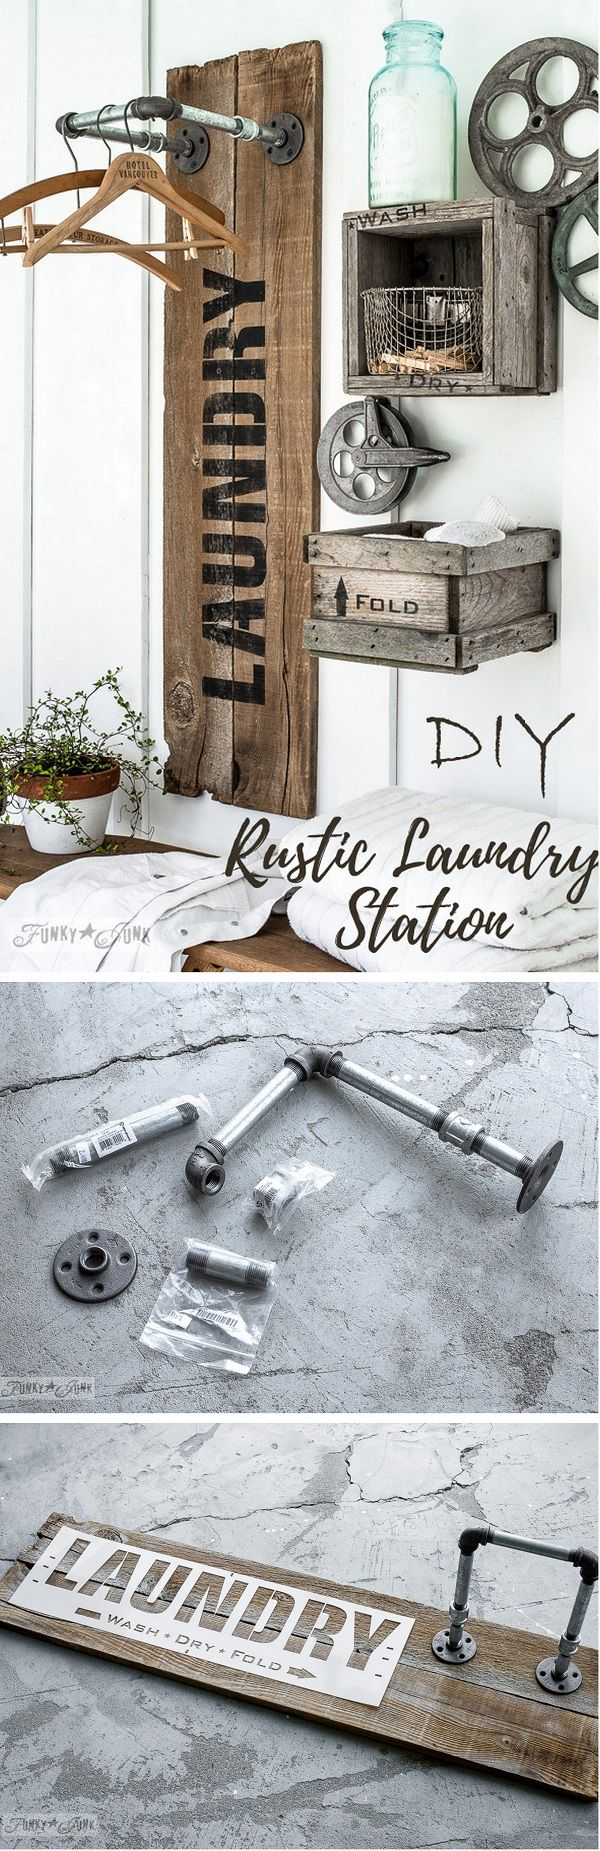 Check out this easy idea on how to make a #DIY #rustic laundry station on a #budget #homedecor #project @istandarddesign